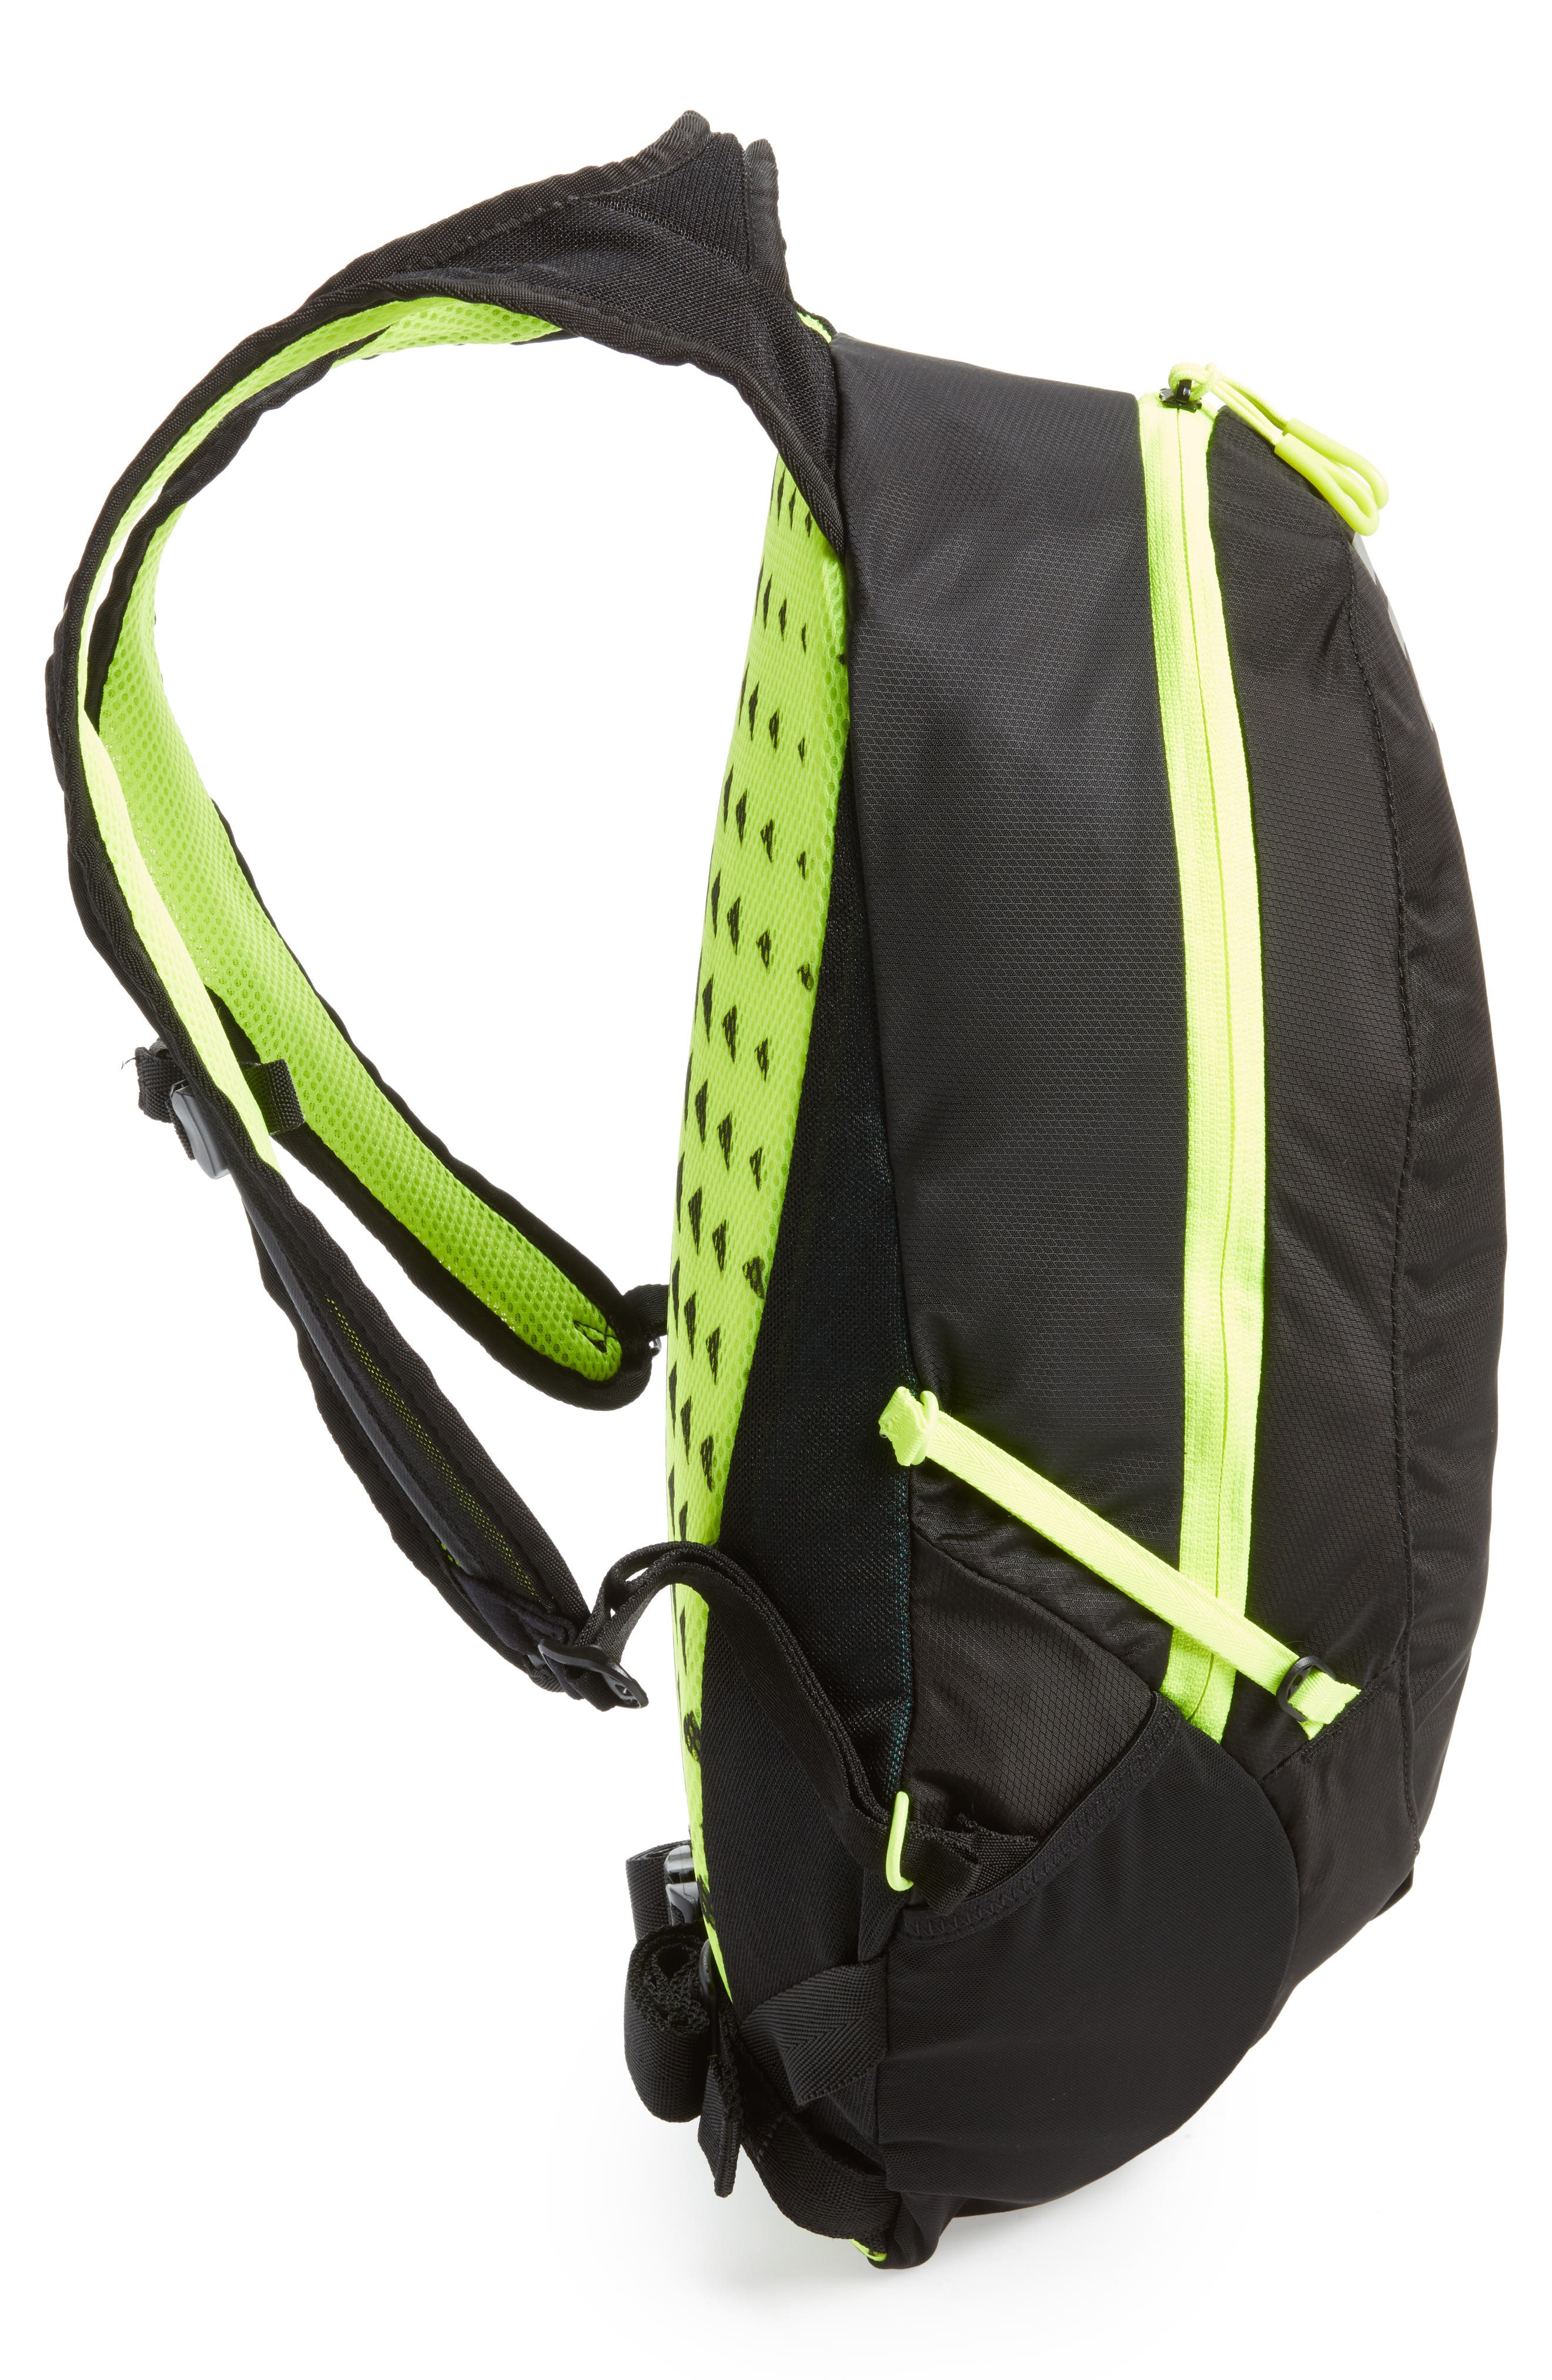 Run Commuter Backpack,                             Alternate thumbnail 5, color,                             Black/ Volt/ Silver